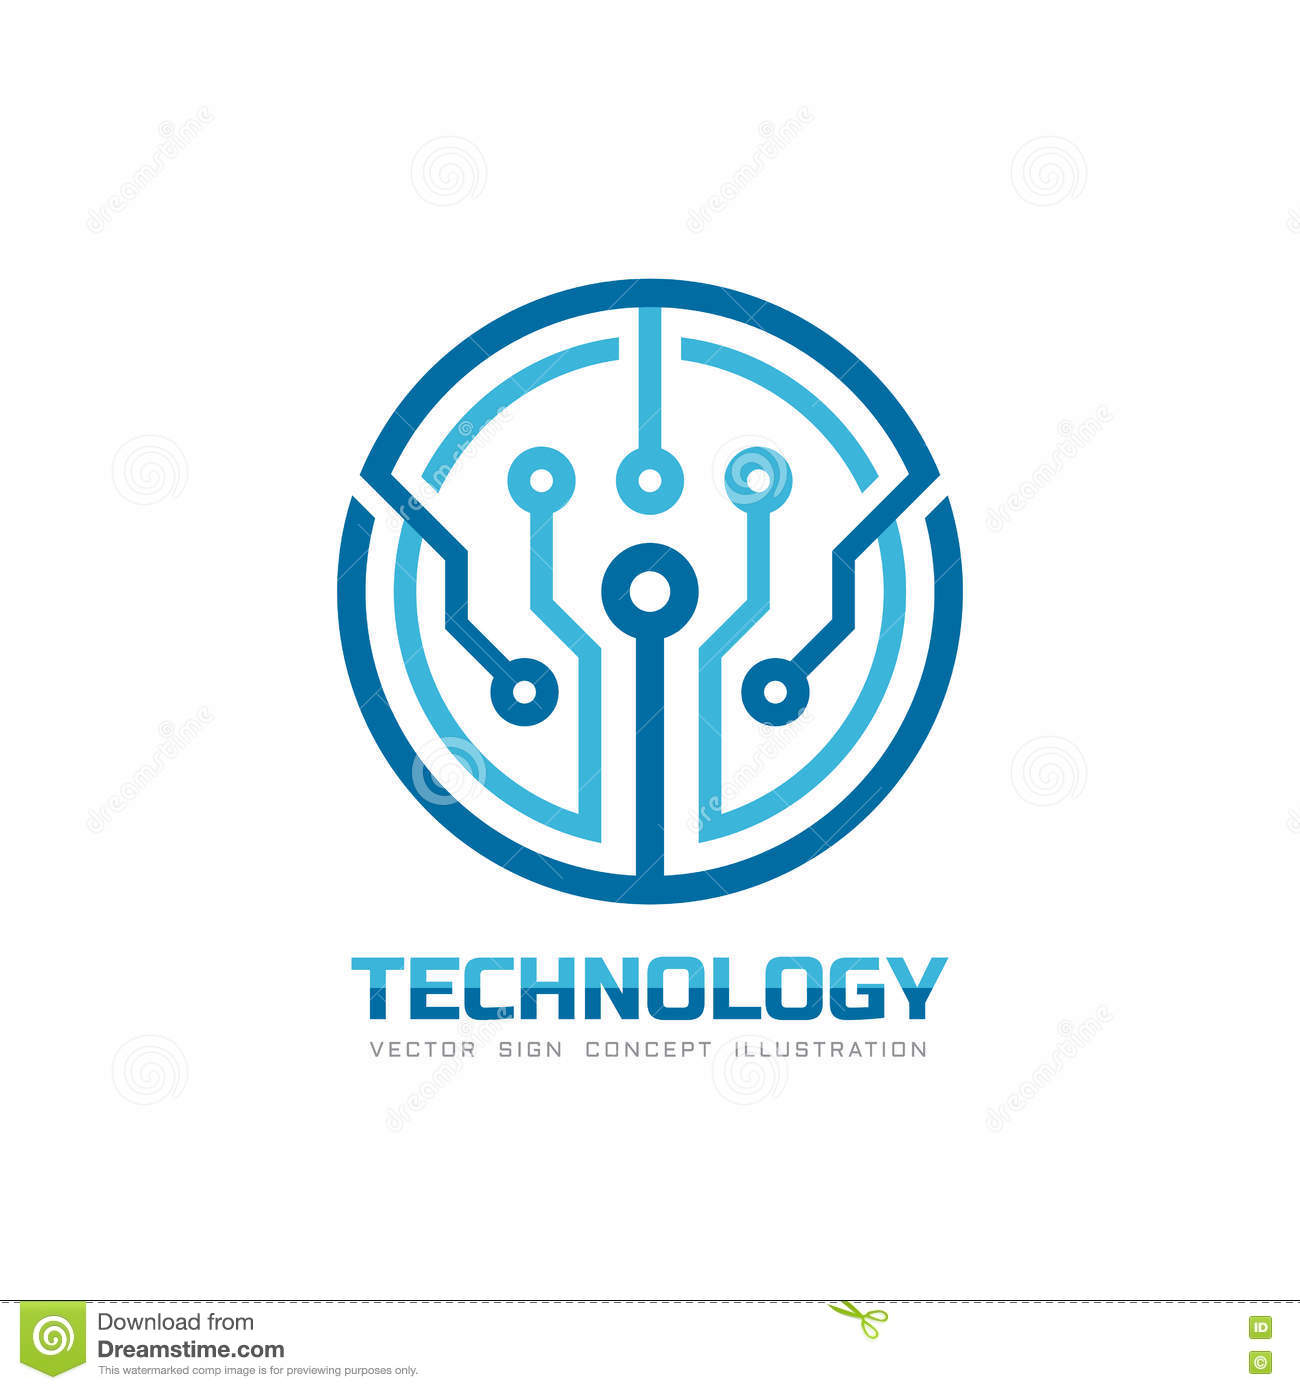 technology vector logo template for corporate identity